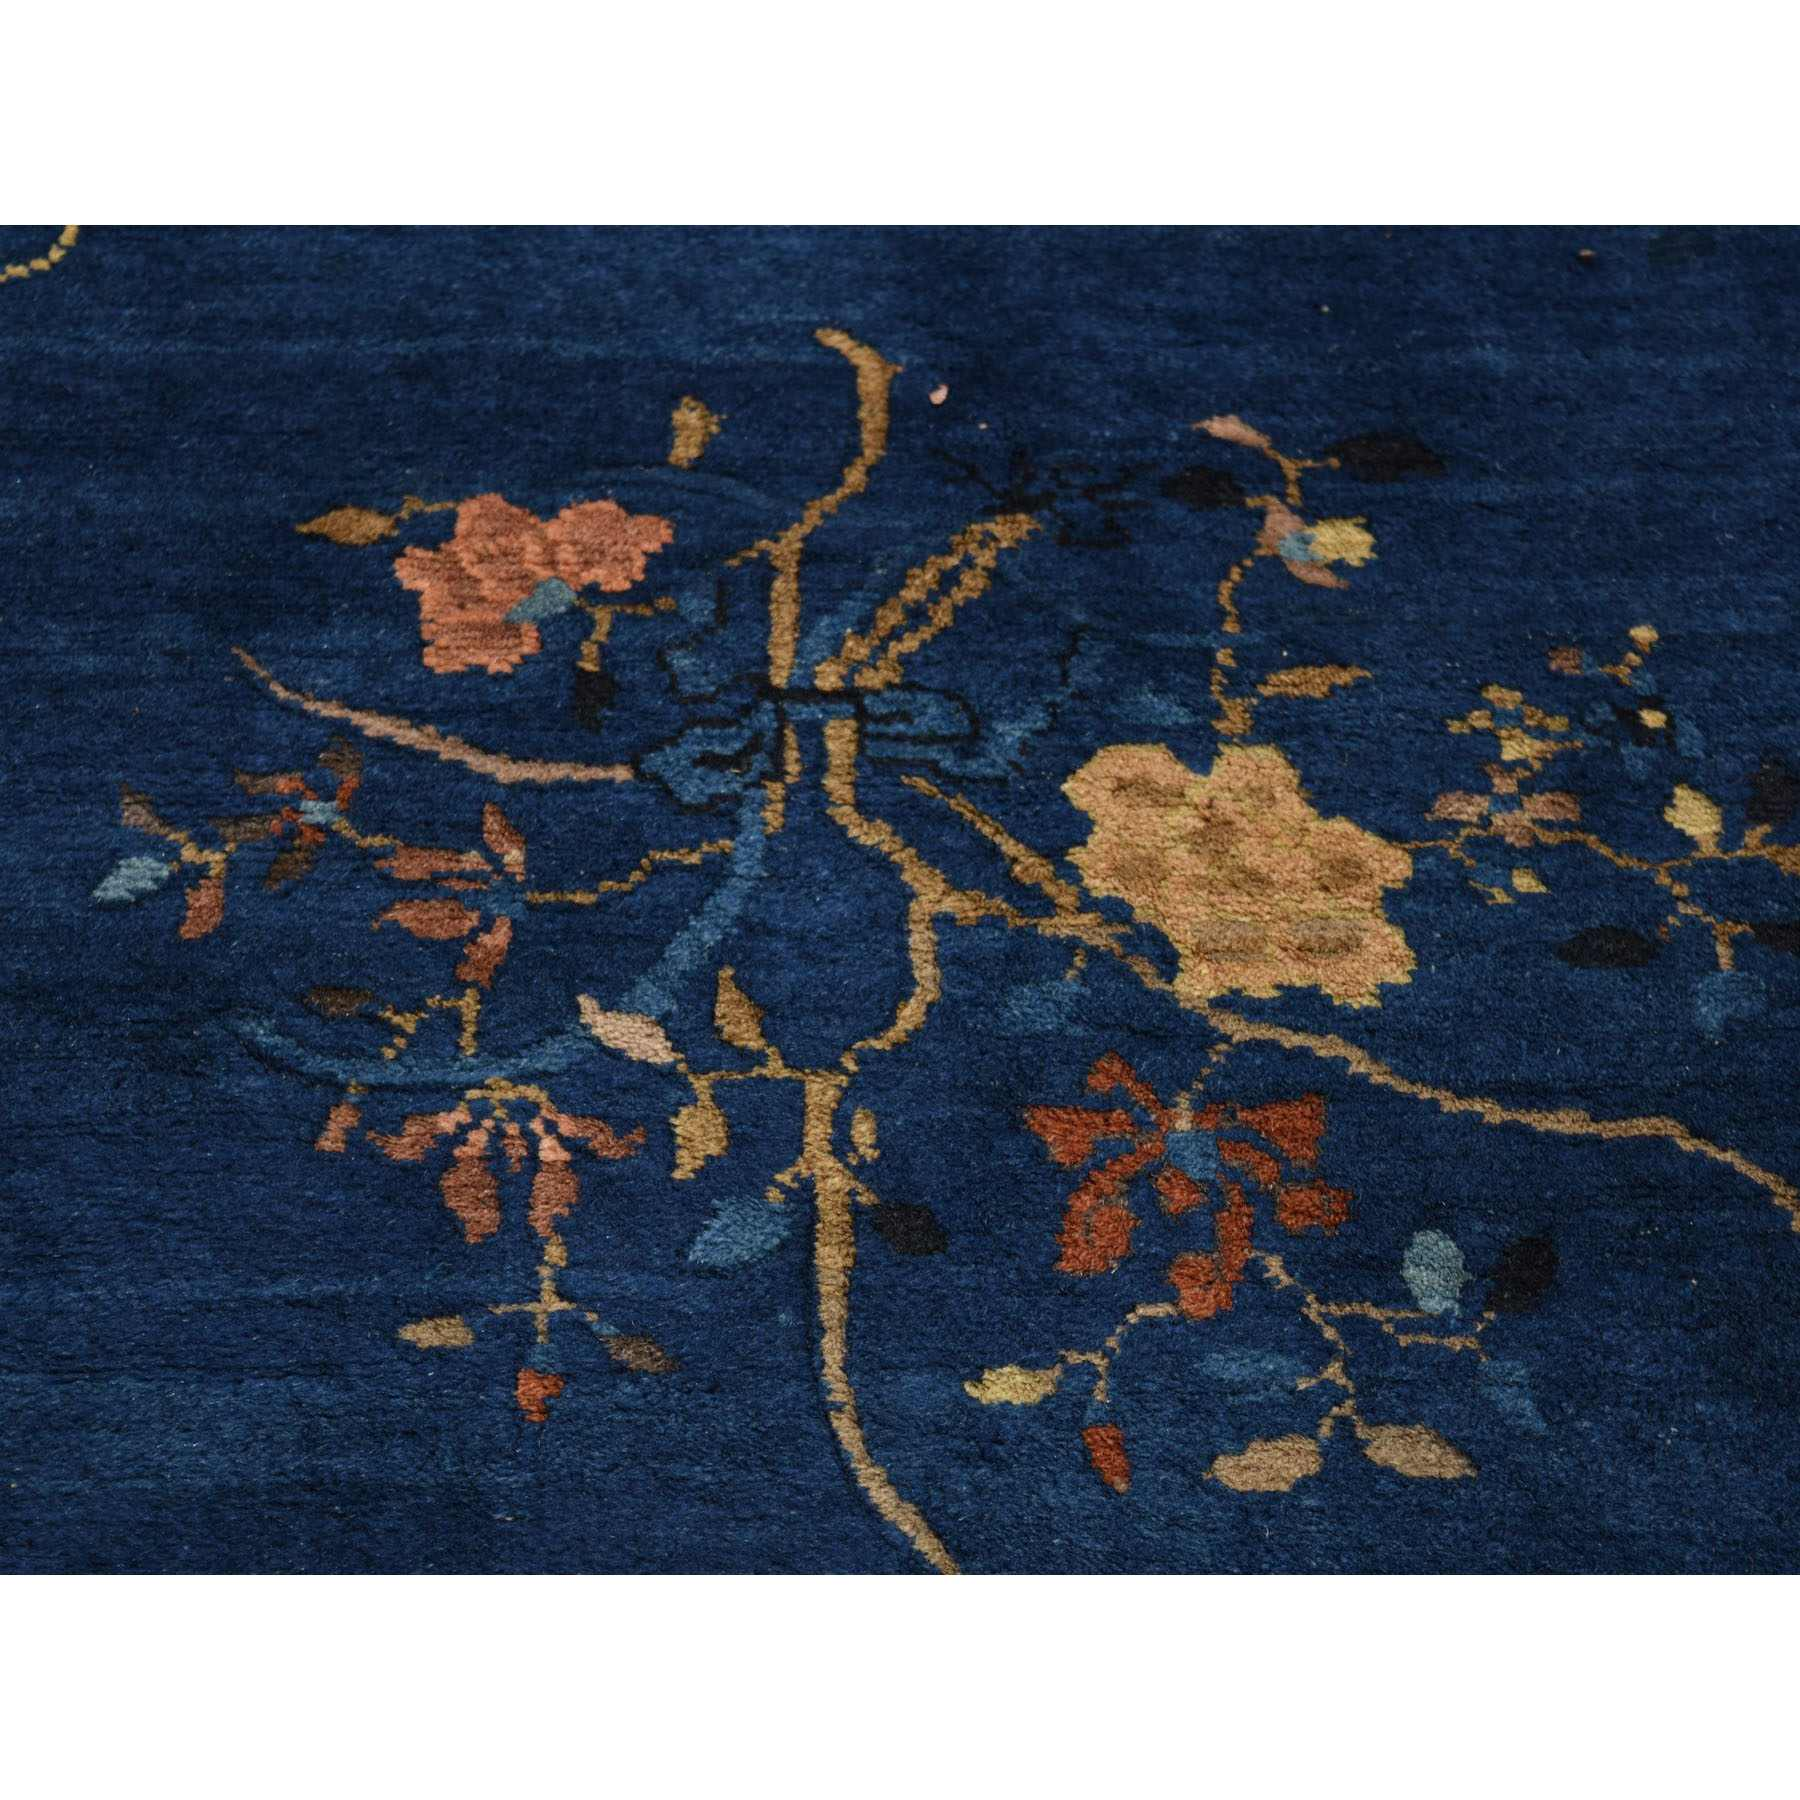 Antique-Hand-Knotted-Rug-234825